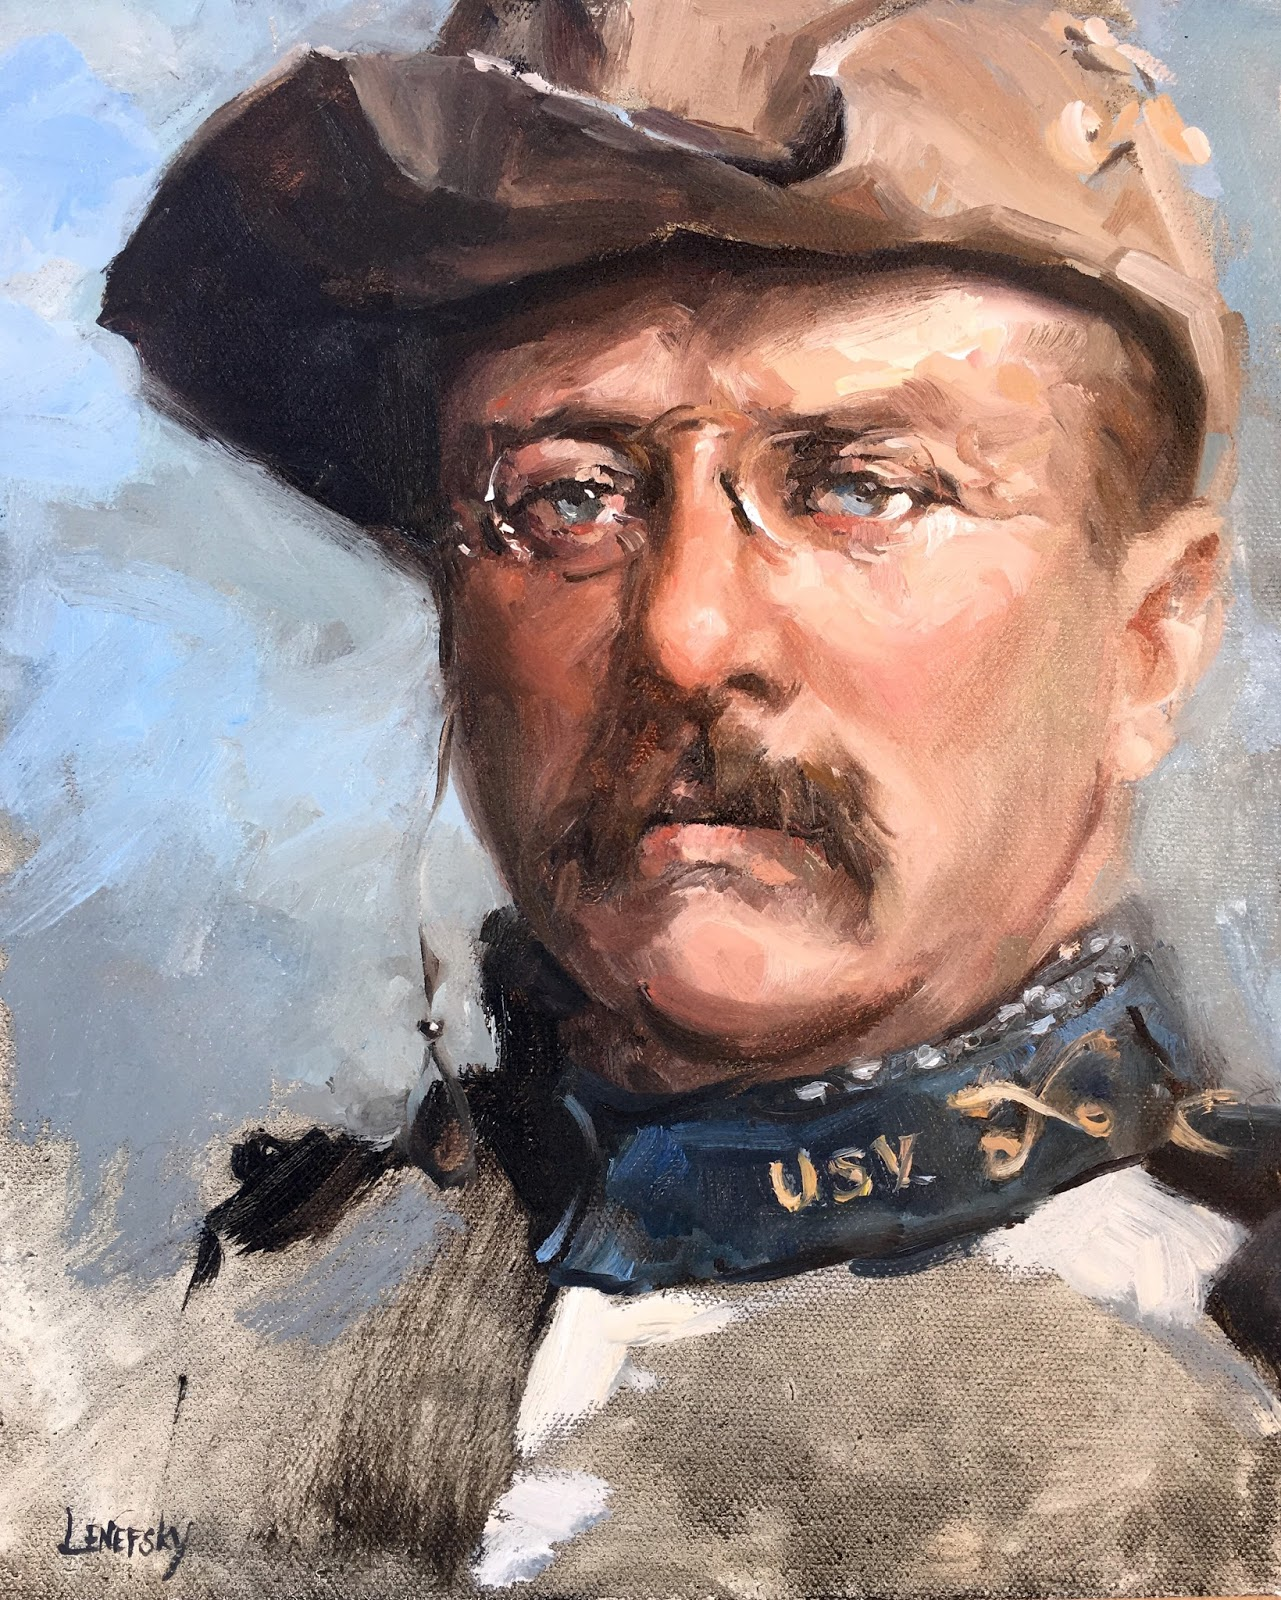 Alla Prima Teddy Roosevelt Portrait Sketch, by Heather Lenefsky, Painting of Theodore Roosevelt